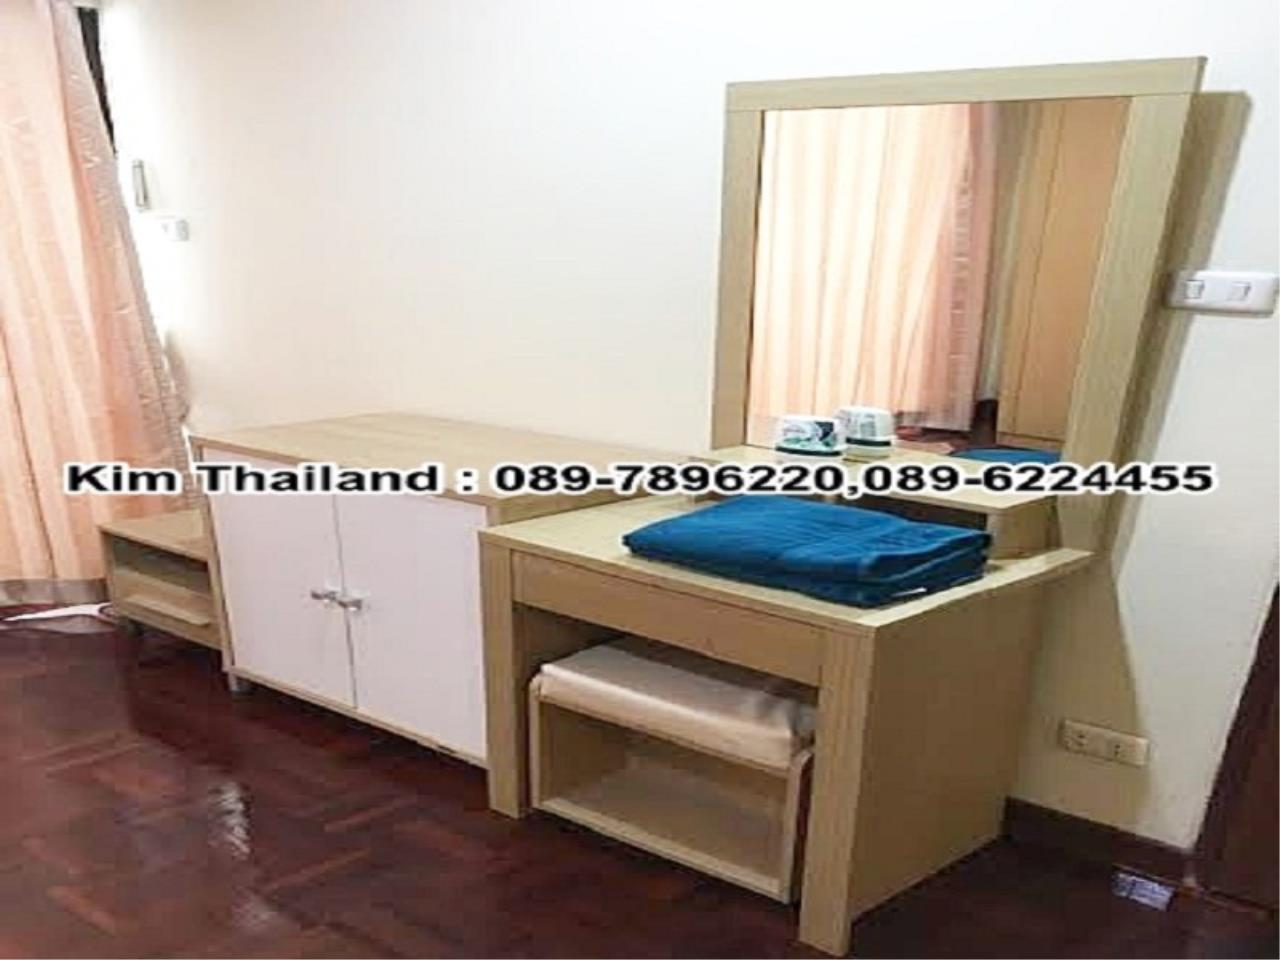 BKKcondorental Agency's For rent, Condo Saranjai Mansion. Area 63 sq.m. 1 bedroom. Rent 20,000baht/month 14